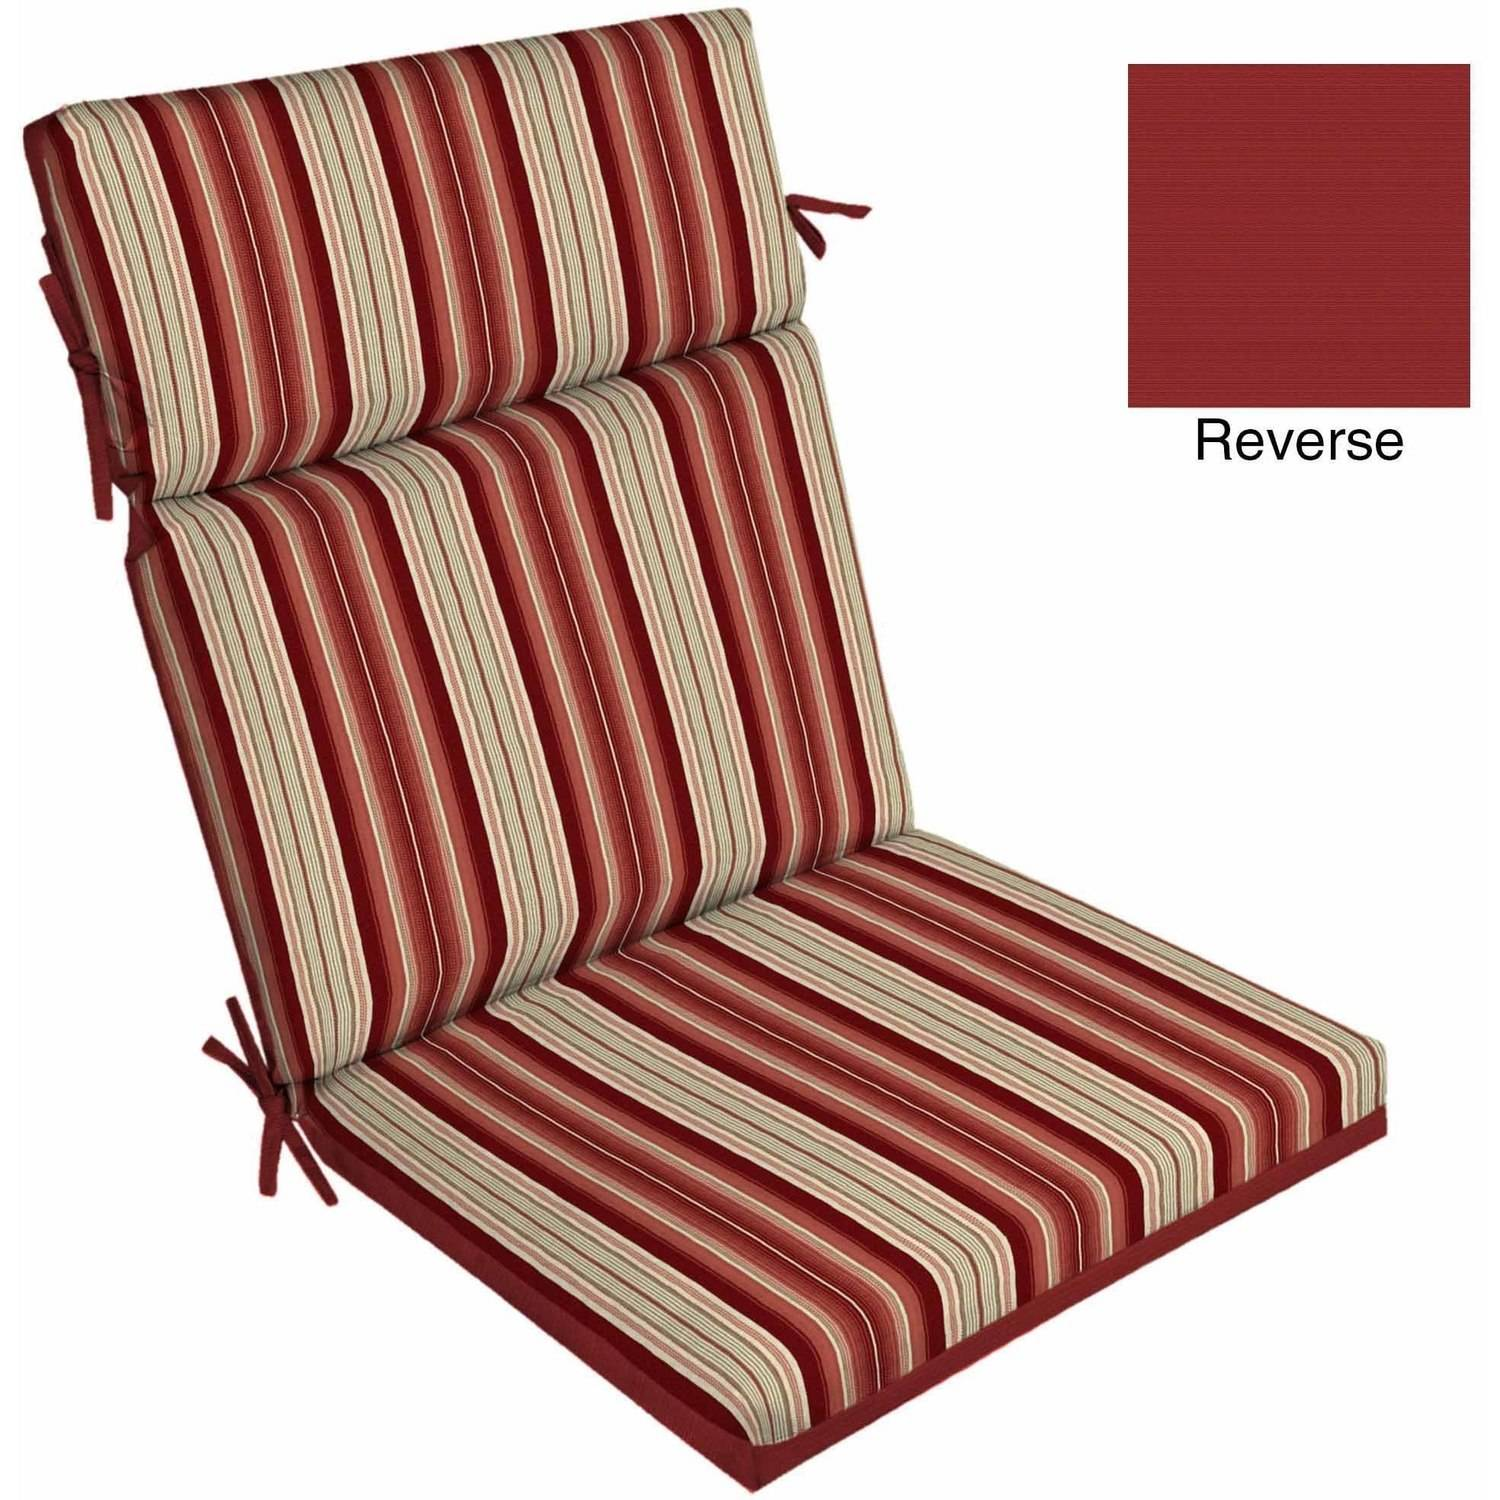 Stunning patio furniture cushions better homes and gardens outdoor patio reversible dining chair cushion jxagcok